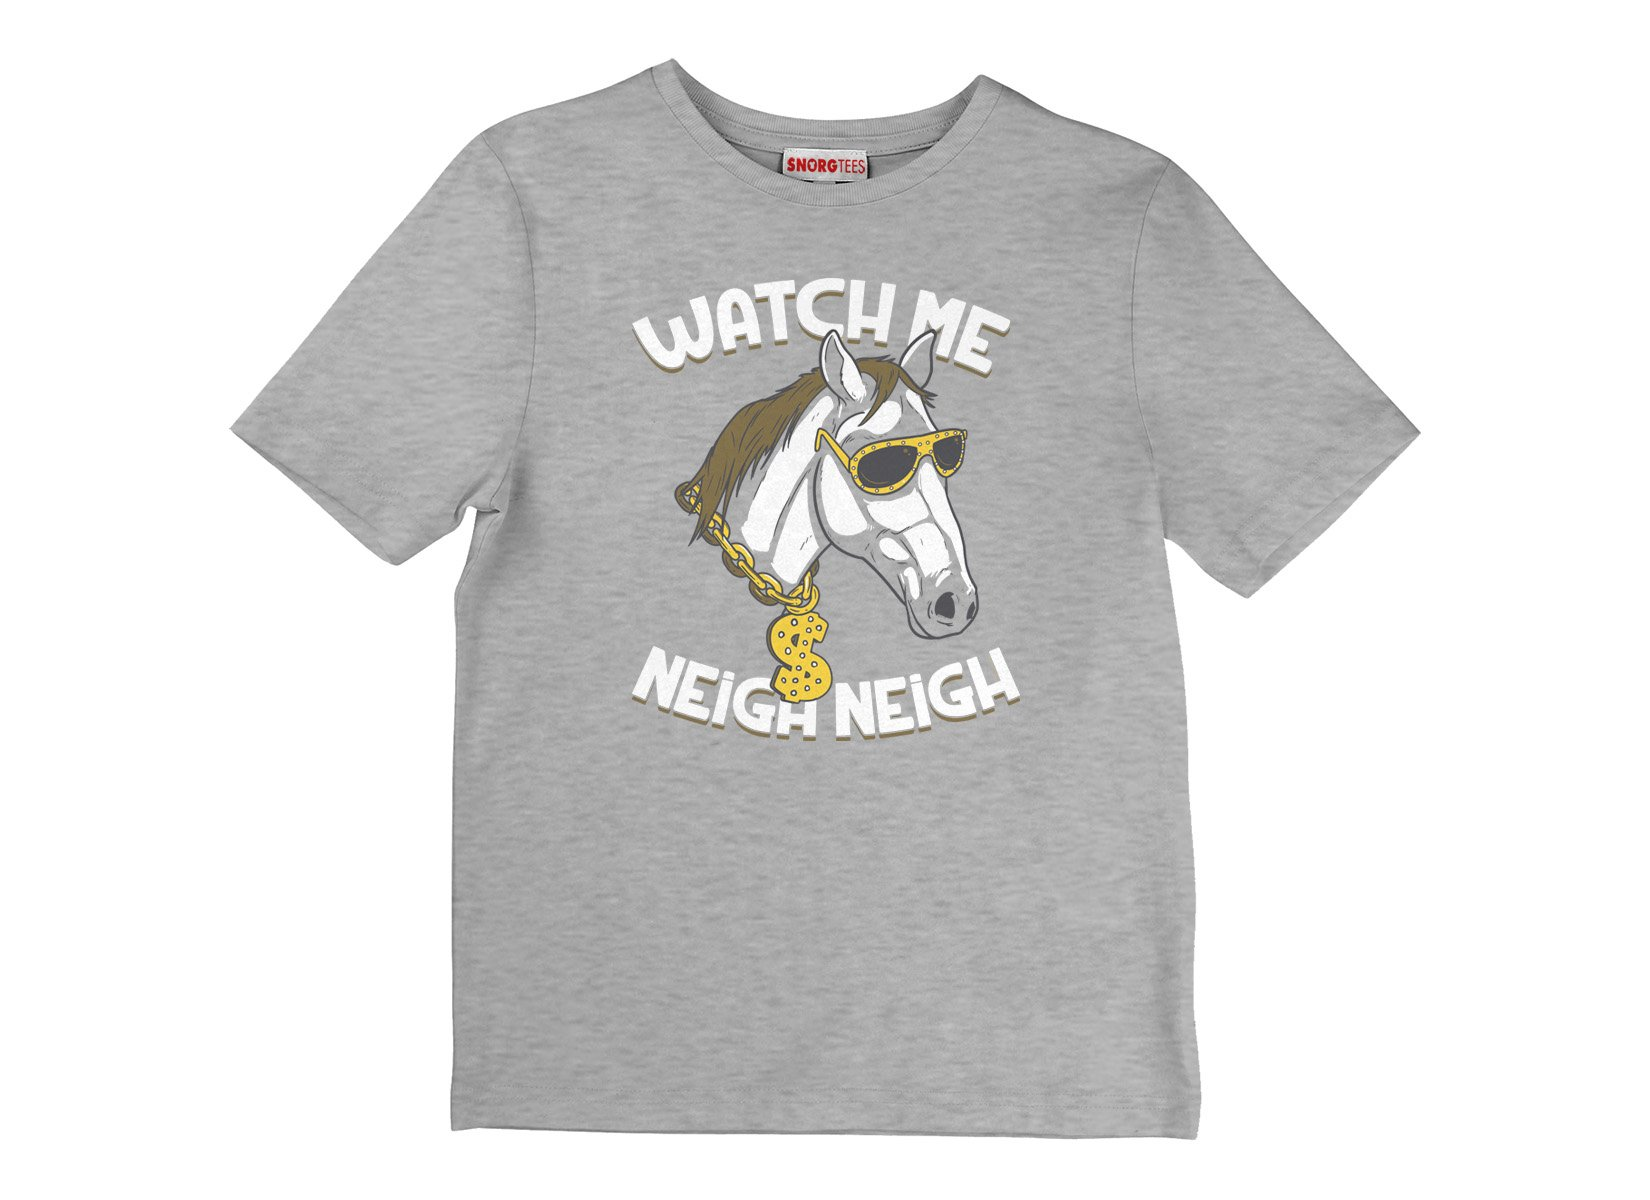 Watch Me Neigh Neigh on Kids T-Shirt